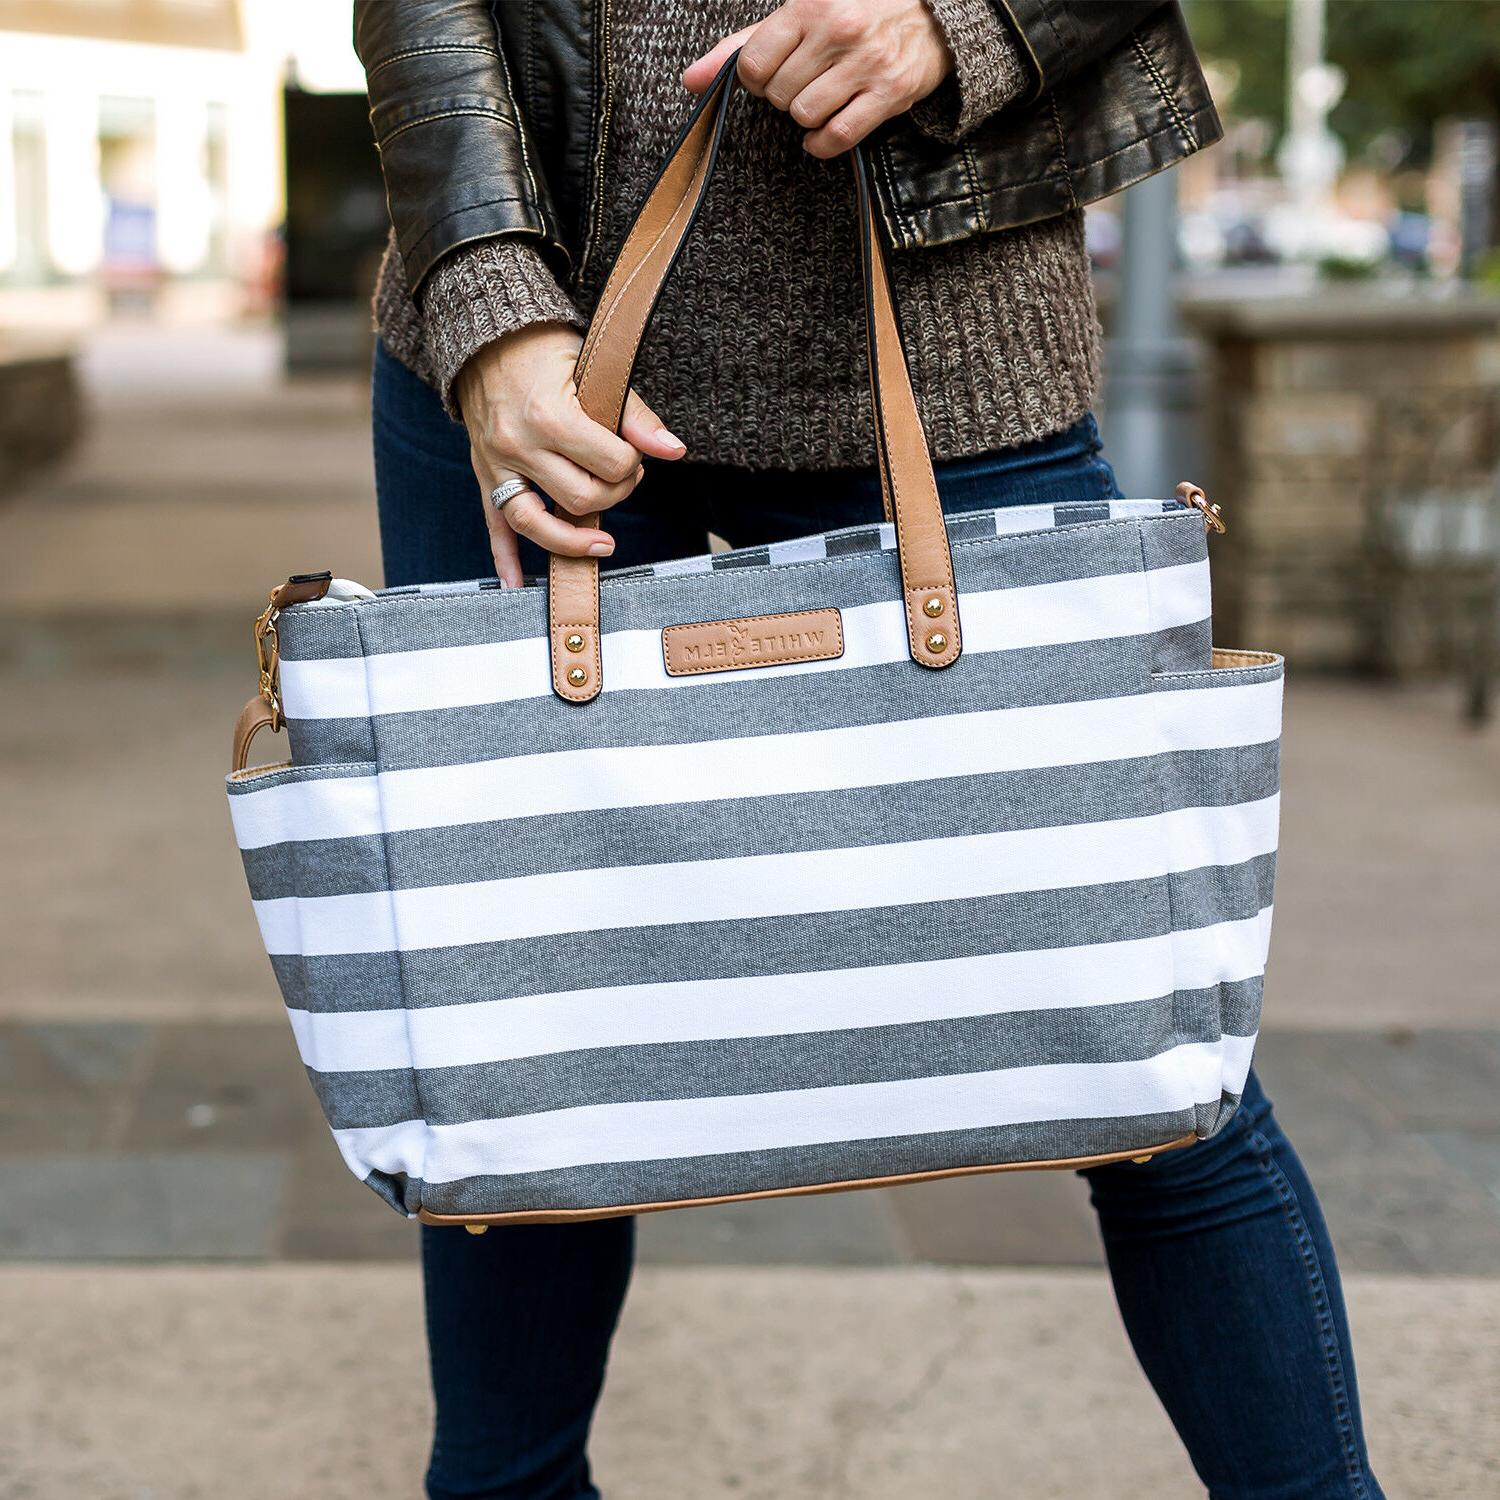 The Tote Bag by White Bag | Laptop